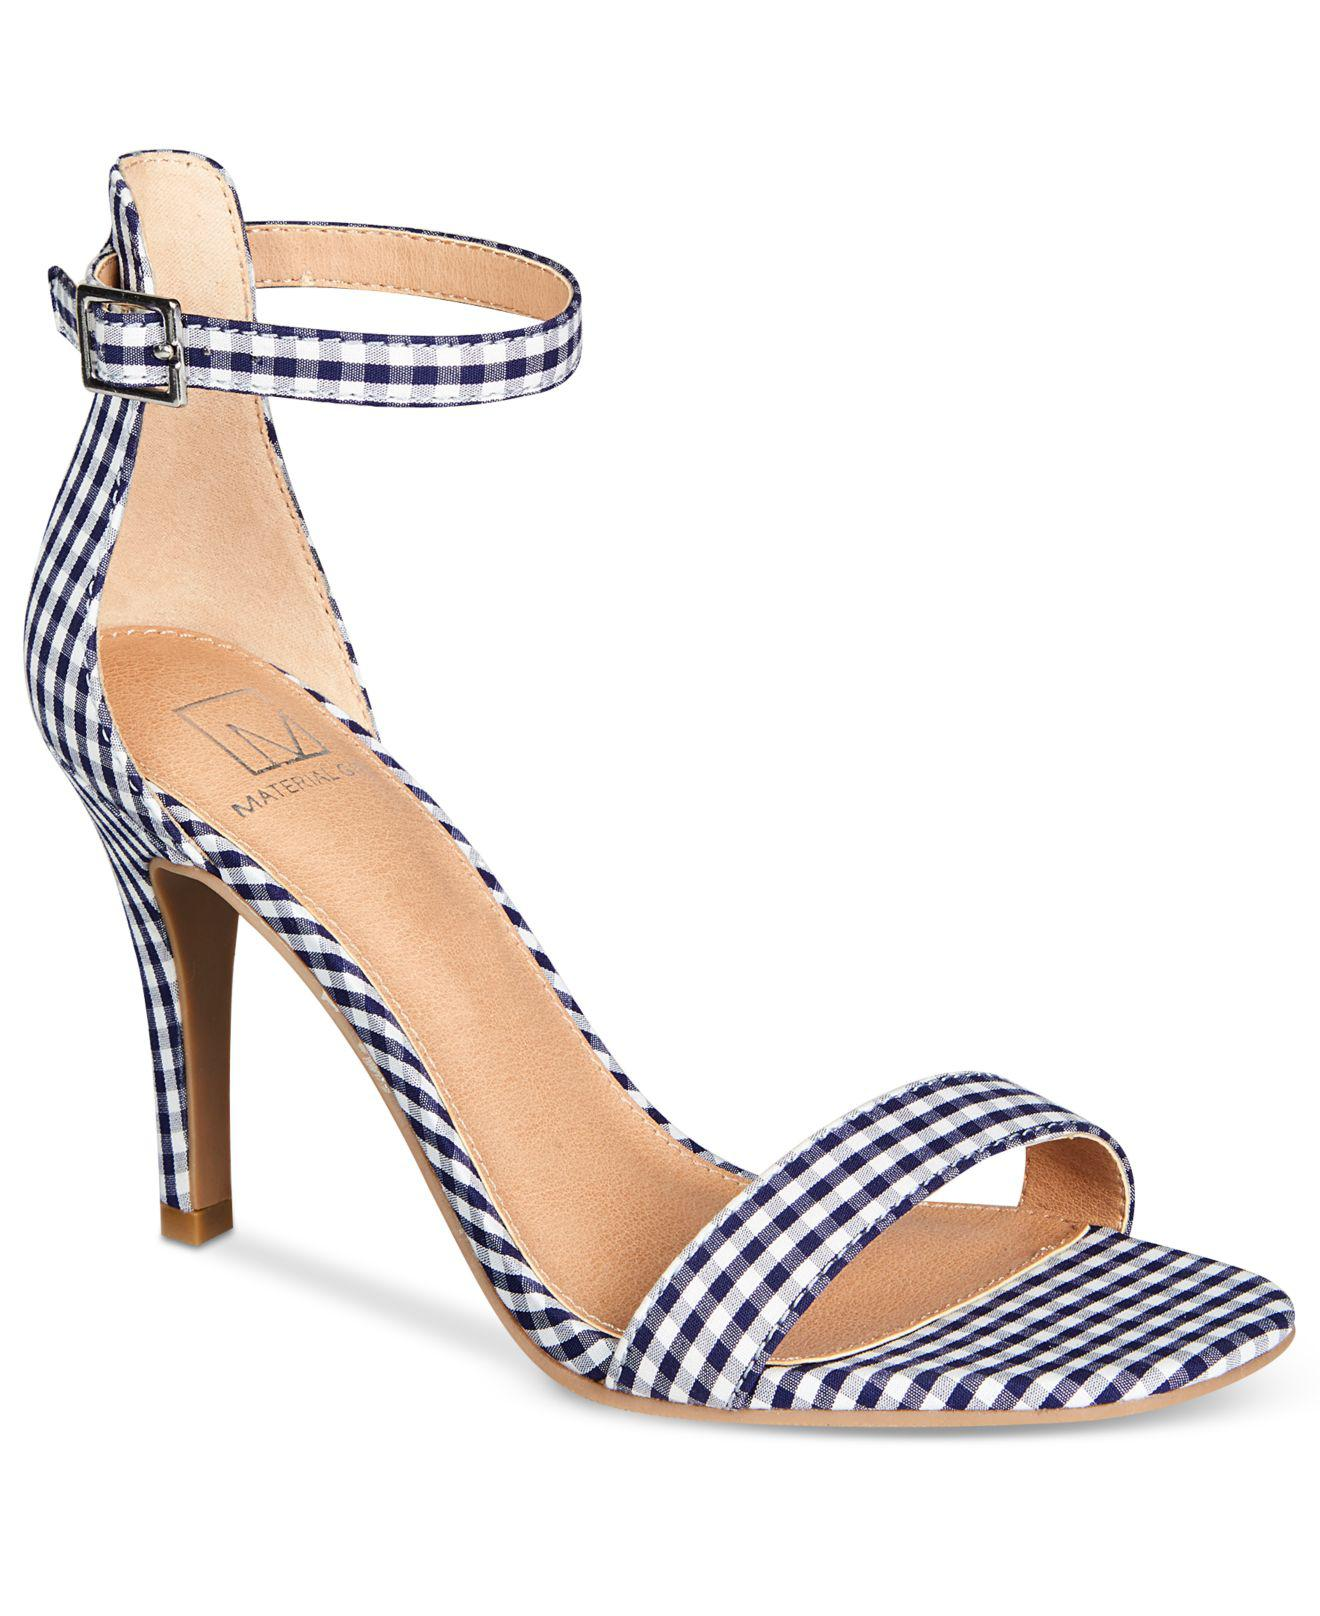 ac0b959dee2 Lyst - Material Girl Blaire Two-piece Dress Sandals